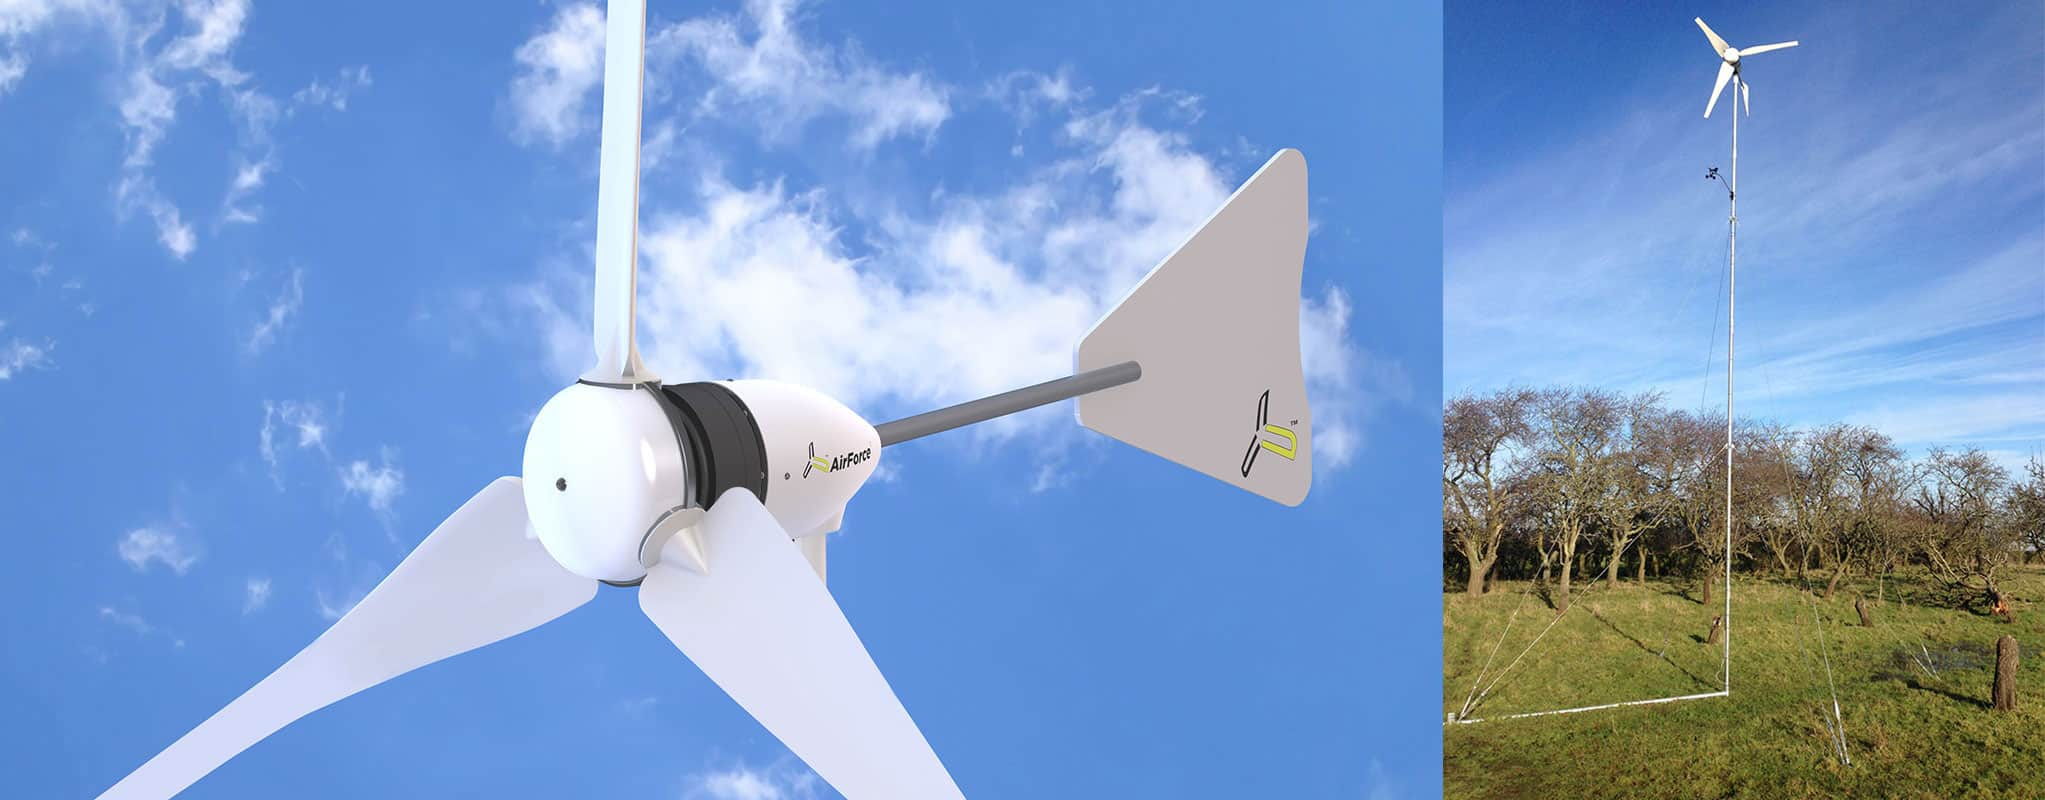 1kw Small Wind Turbine Manufactured For Domestic Use From Futurenergy